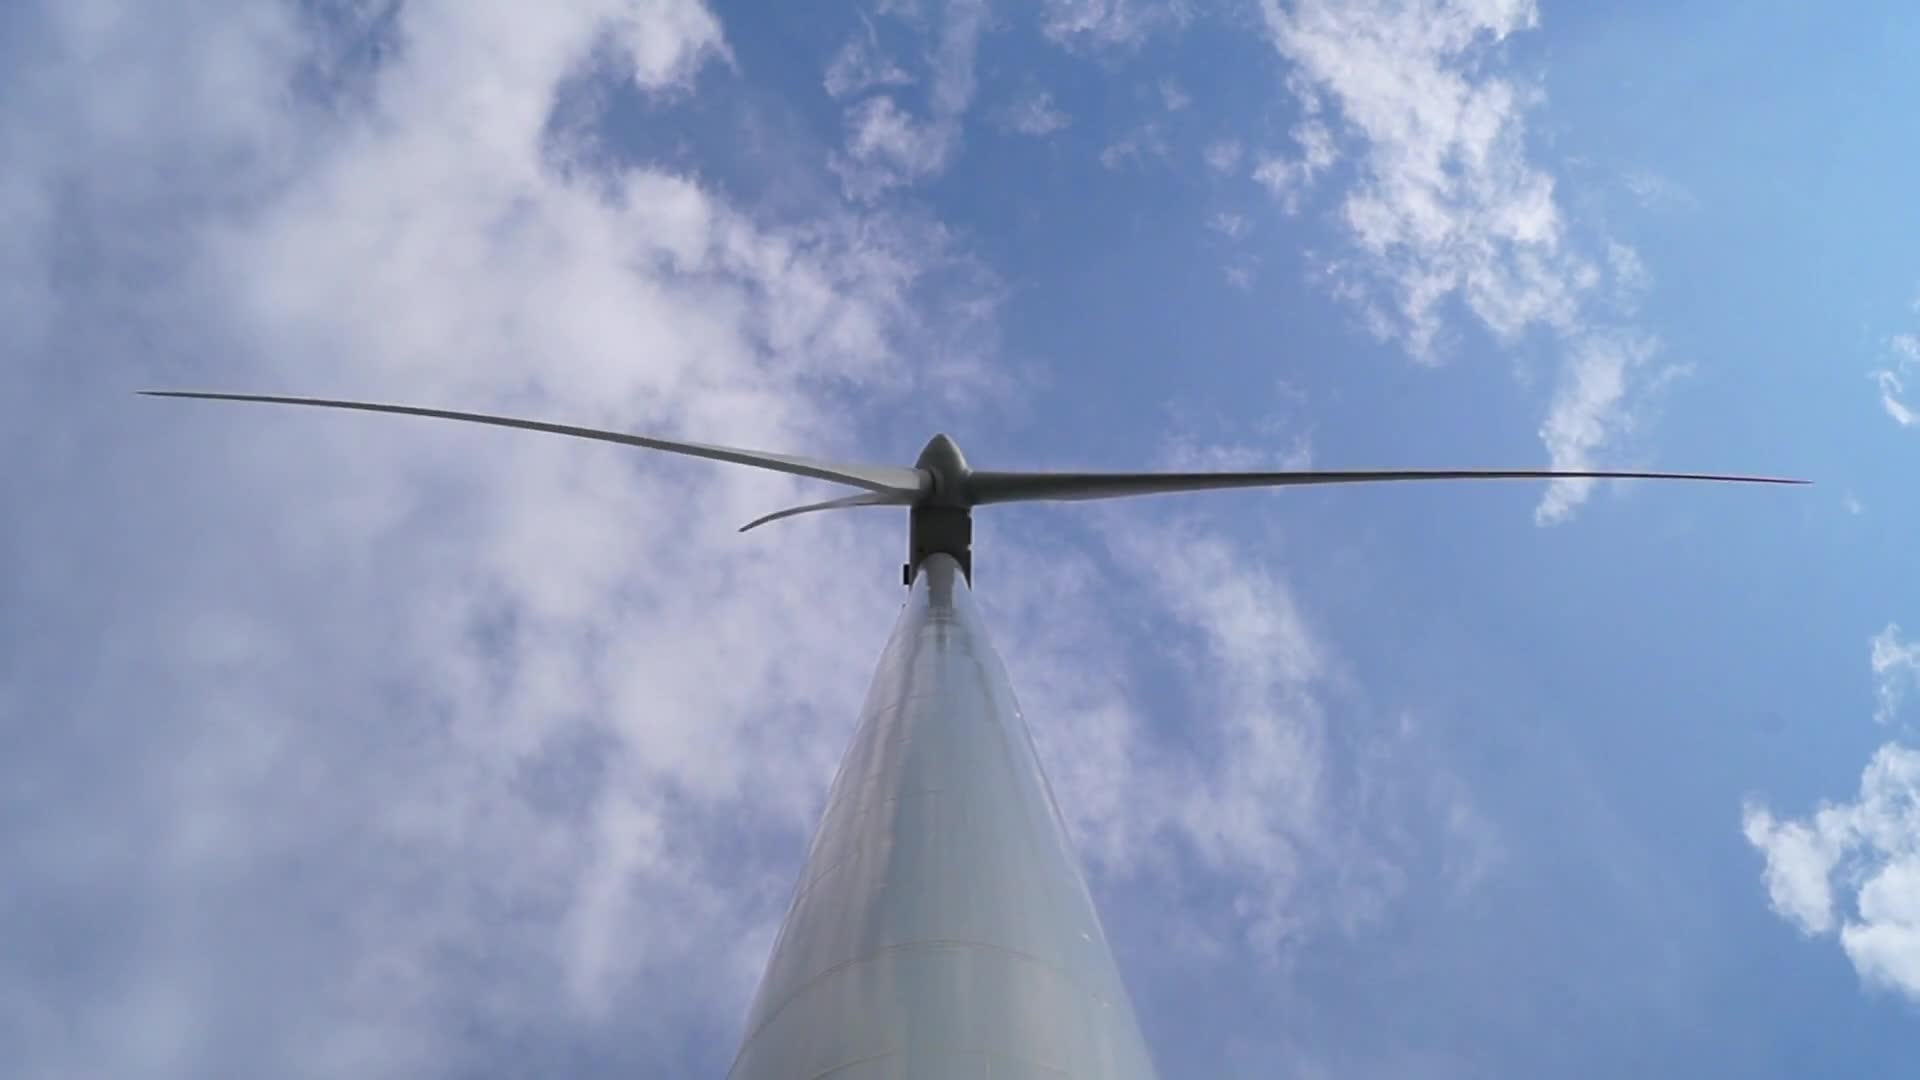 Low angle shot of wind turbine